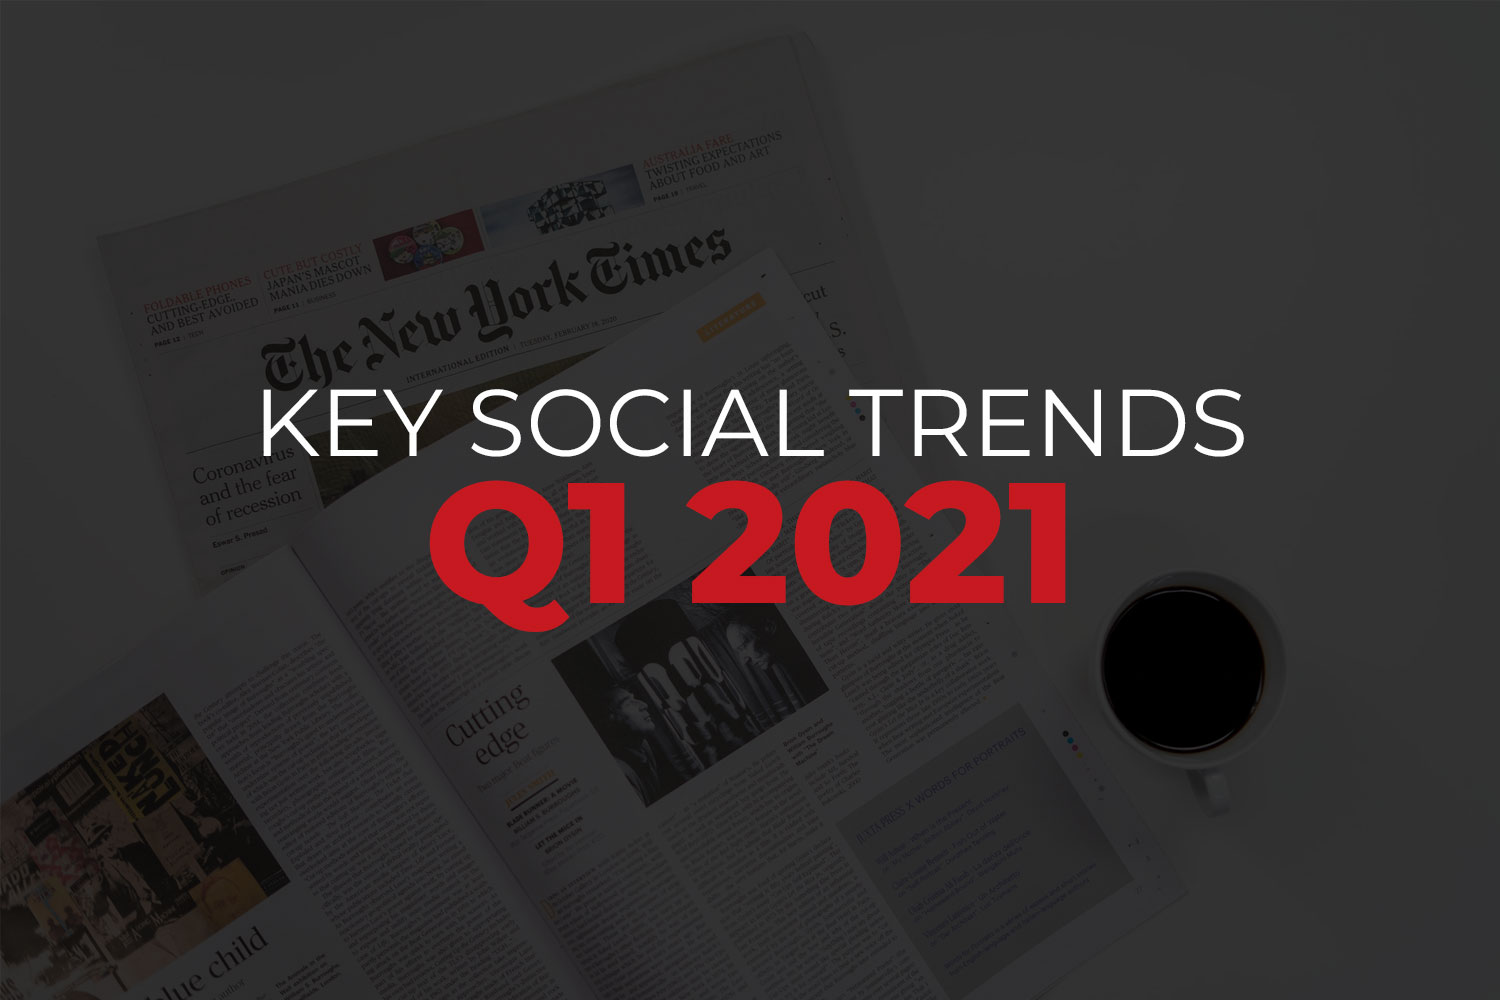 3 Things We've Learned This Quarter to Improve Your Socials in the Next